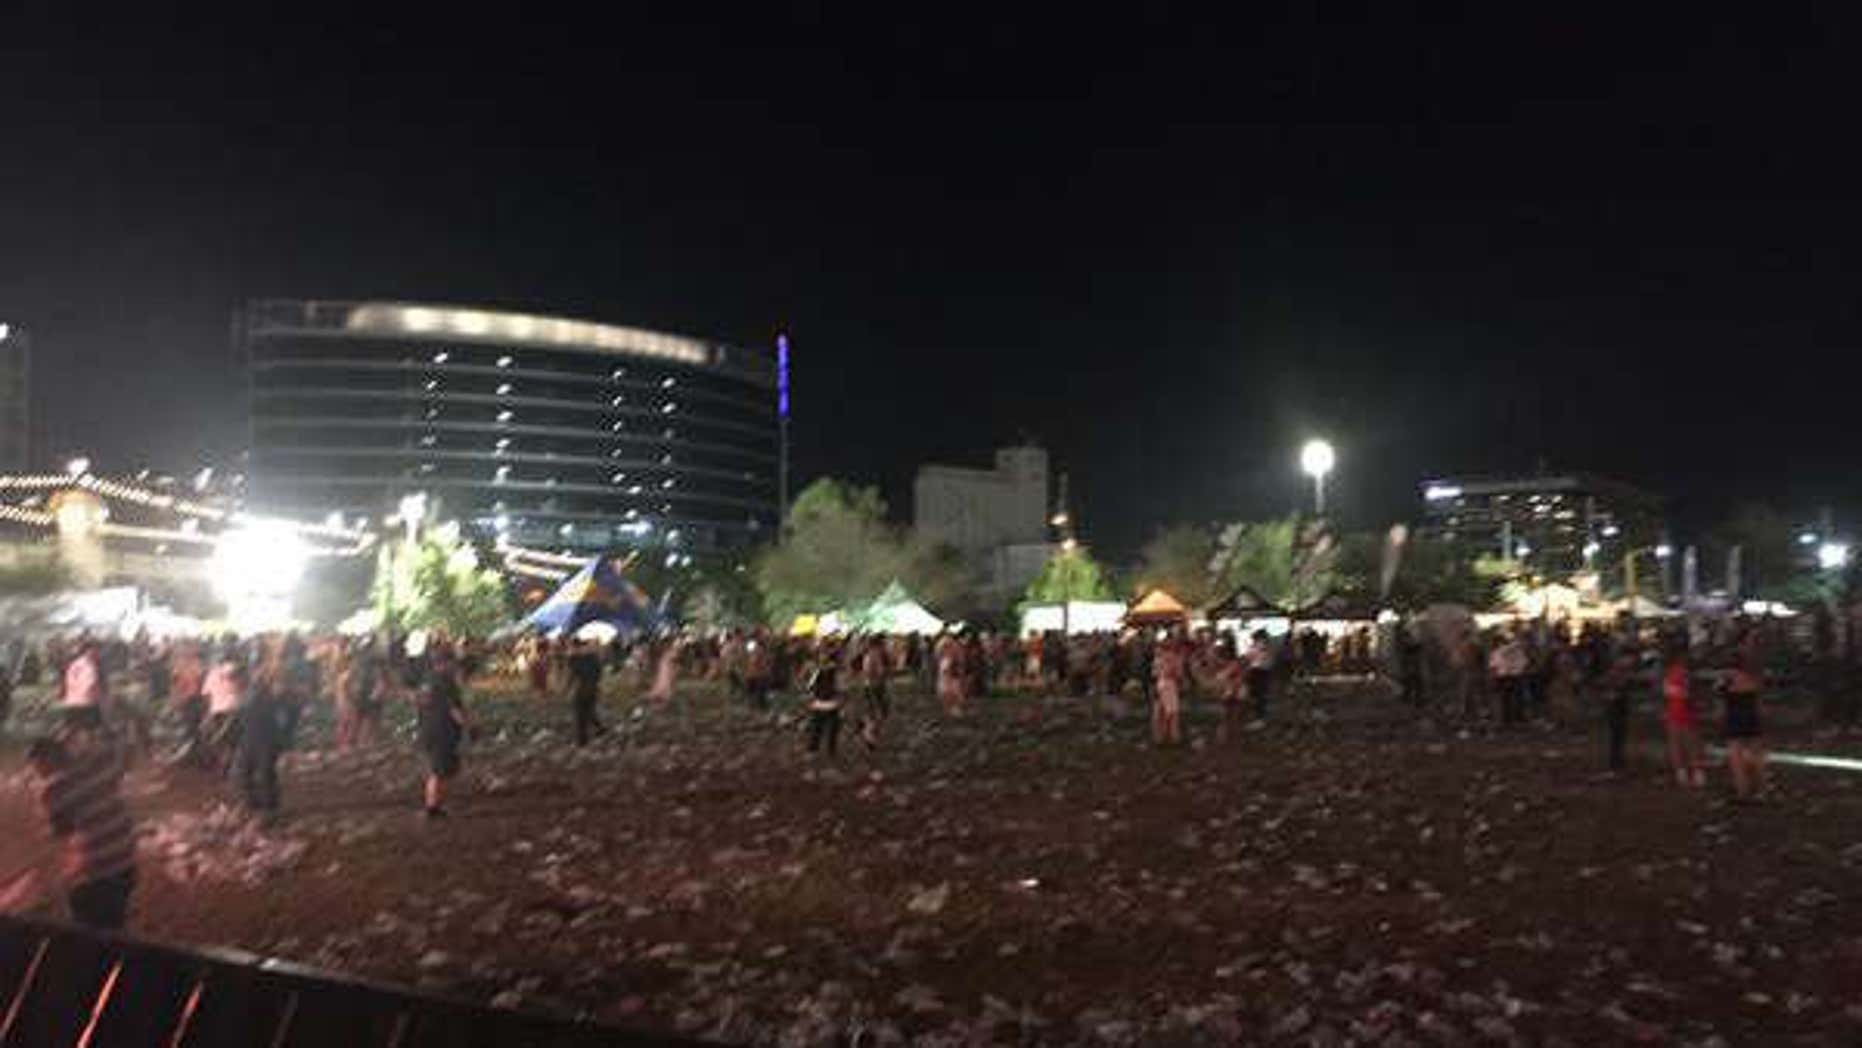 Crowd at the Summer Ends Festival in Tempe, Ariz. begins to clear out.